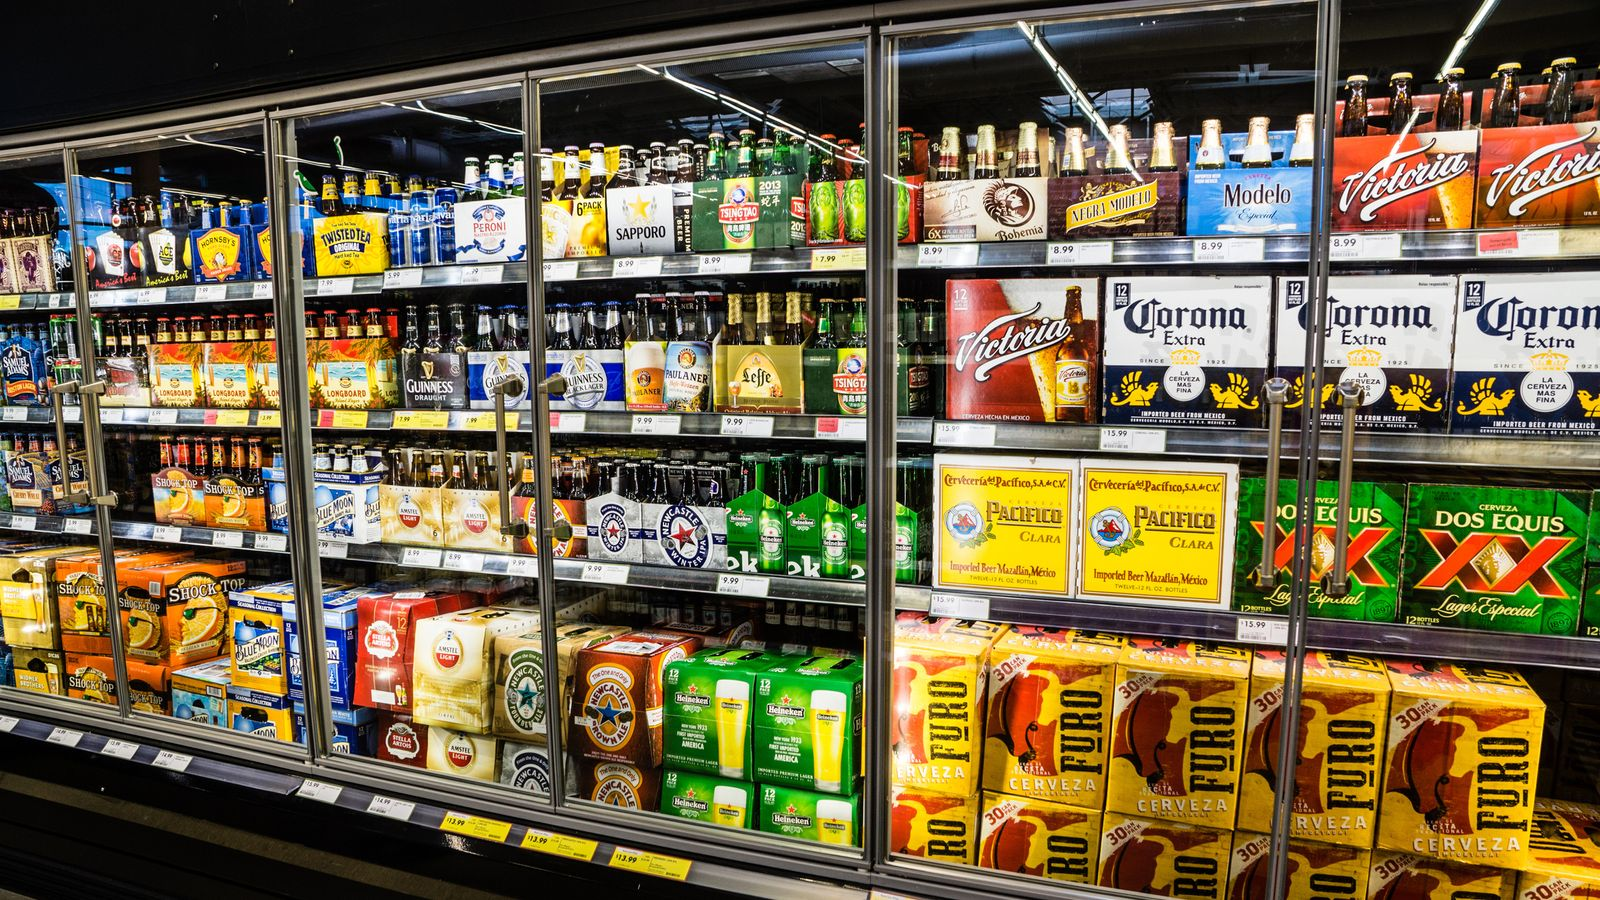 How Much Crate Of Beer Costs 82 In Qatar As Sin Tax Introduced